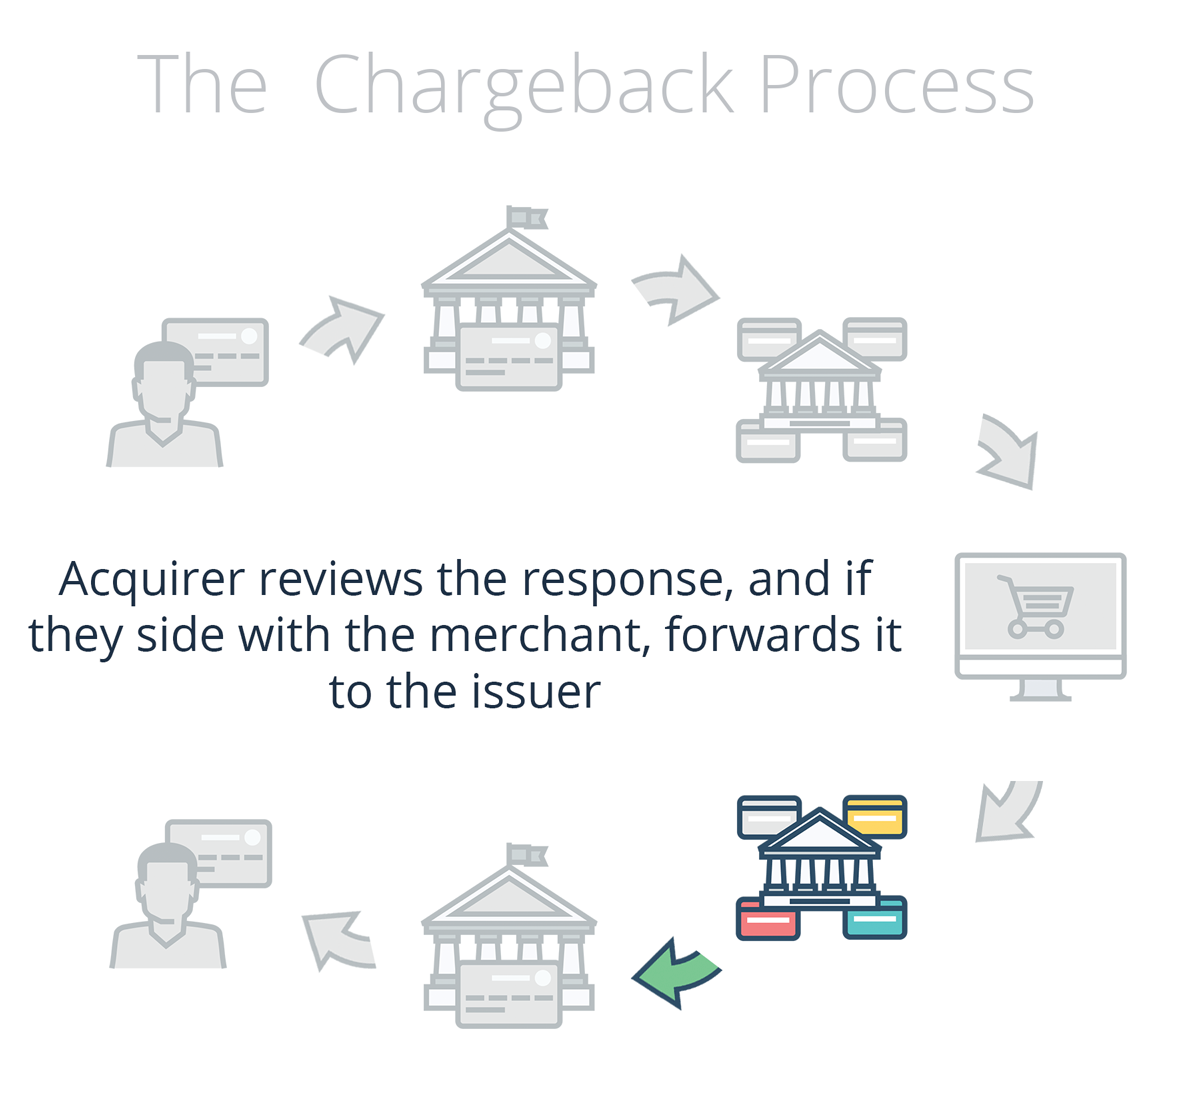 The chargeback process explained chargeback merchant accepts or responds acquirer reviews response and makes a decision nvjuhfo Gallery